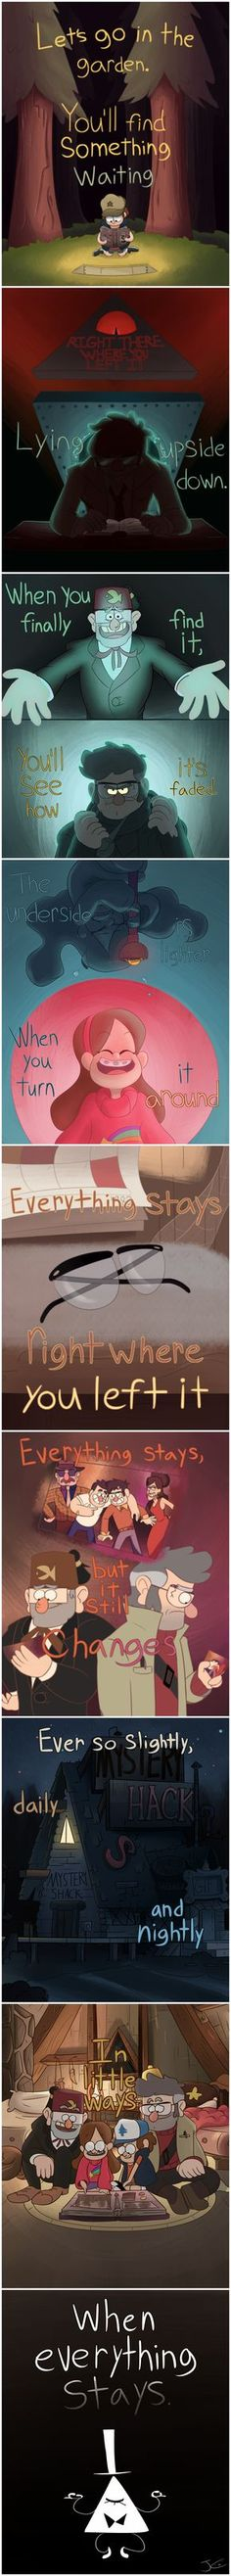 Gravity Falls - Everything Stays #lyrics